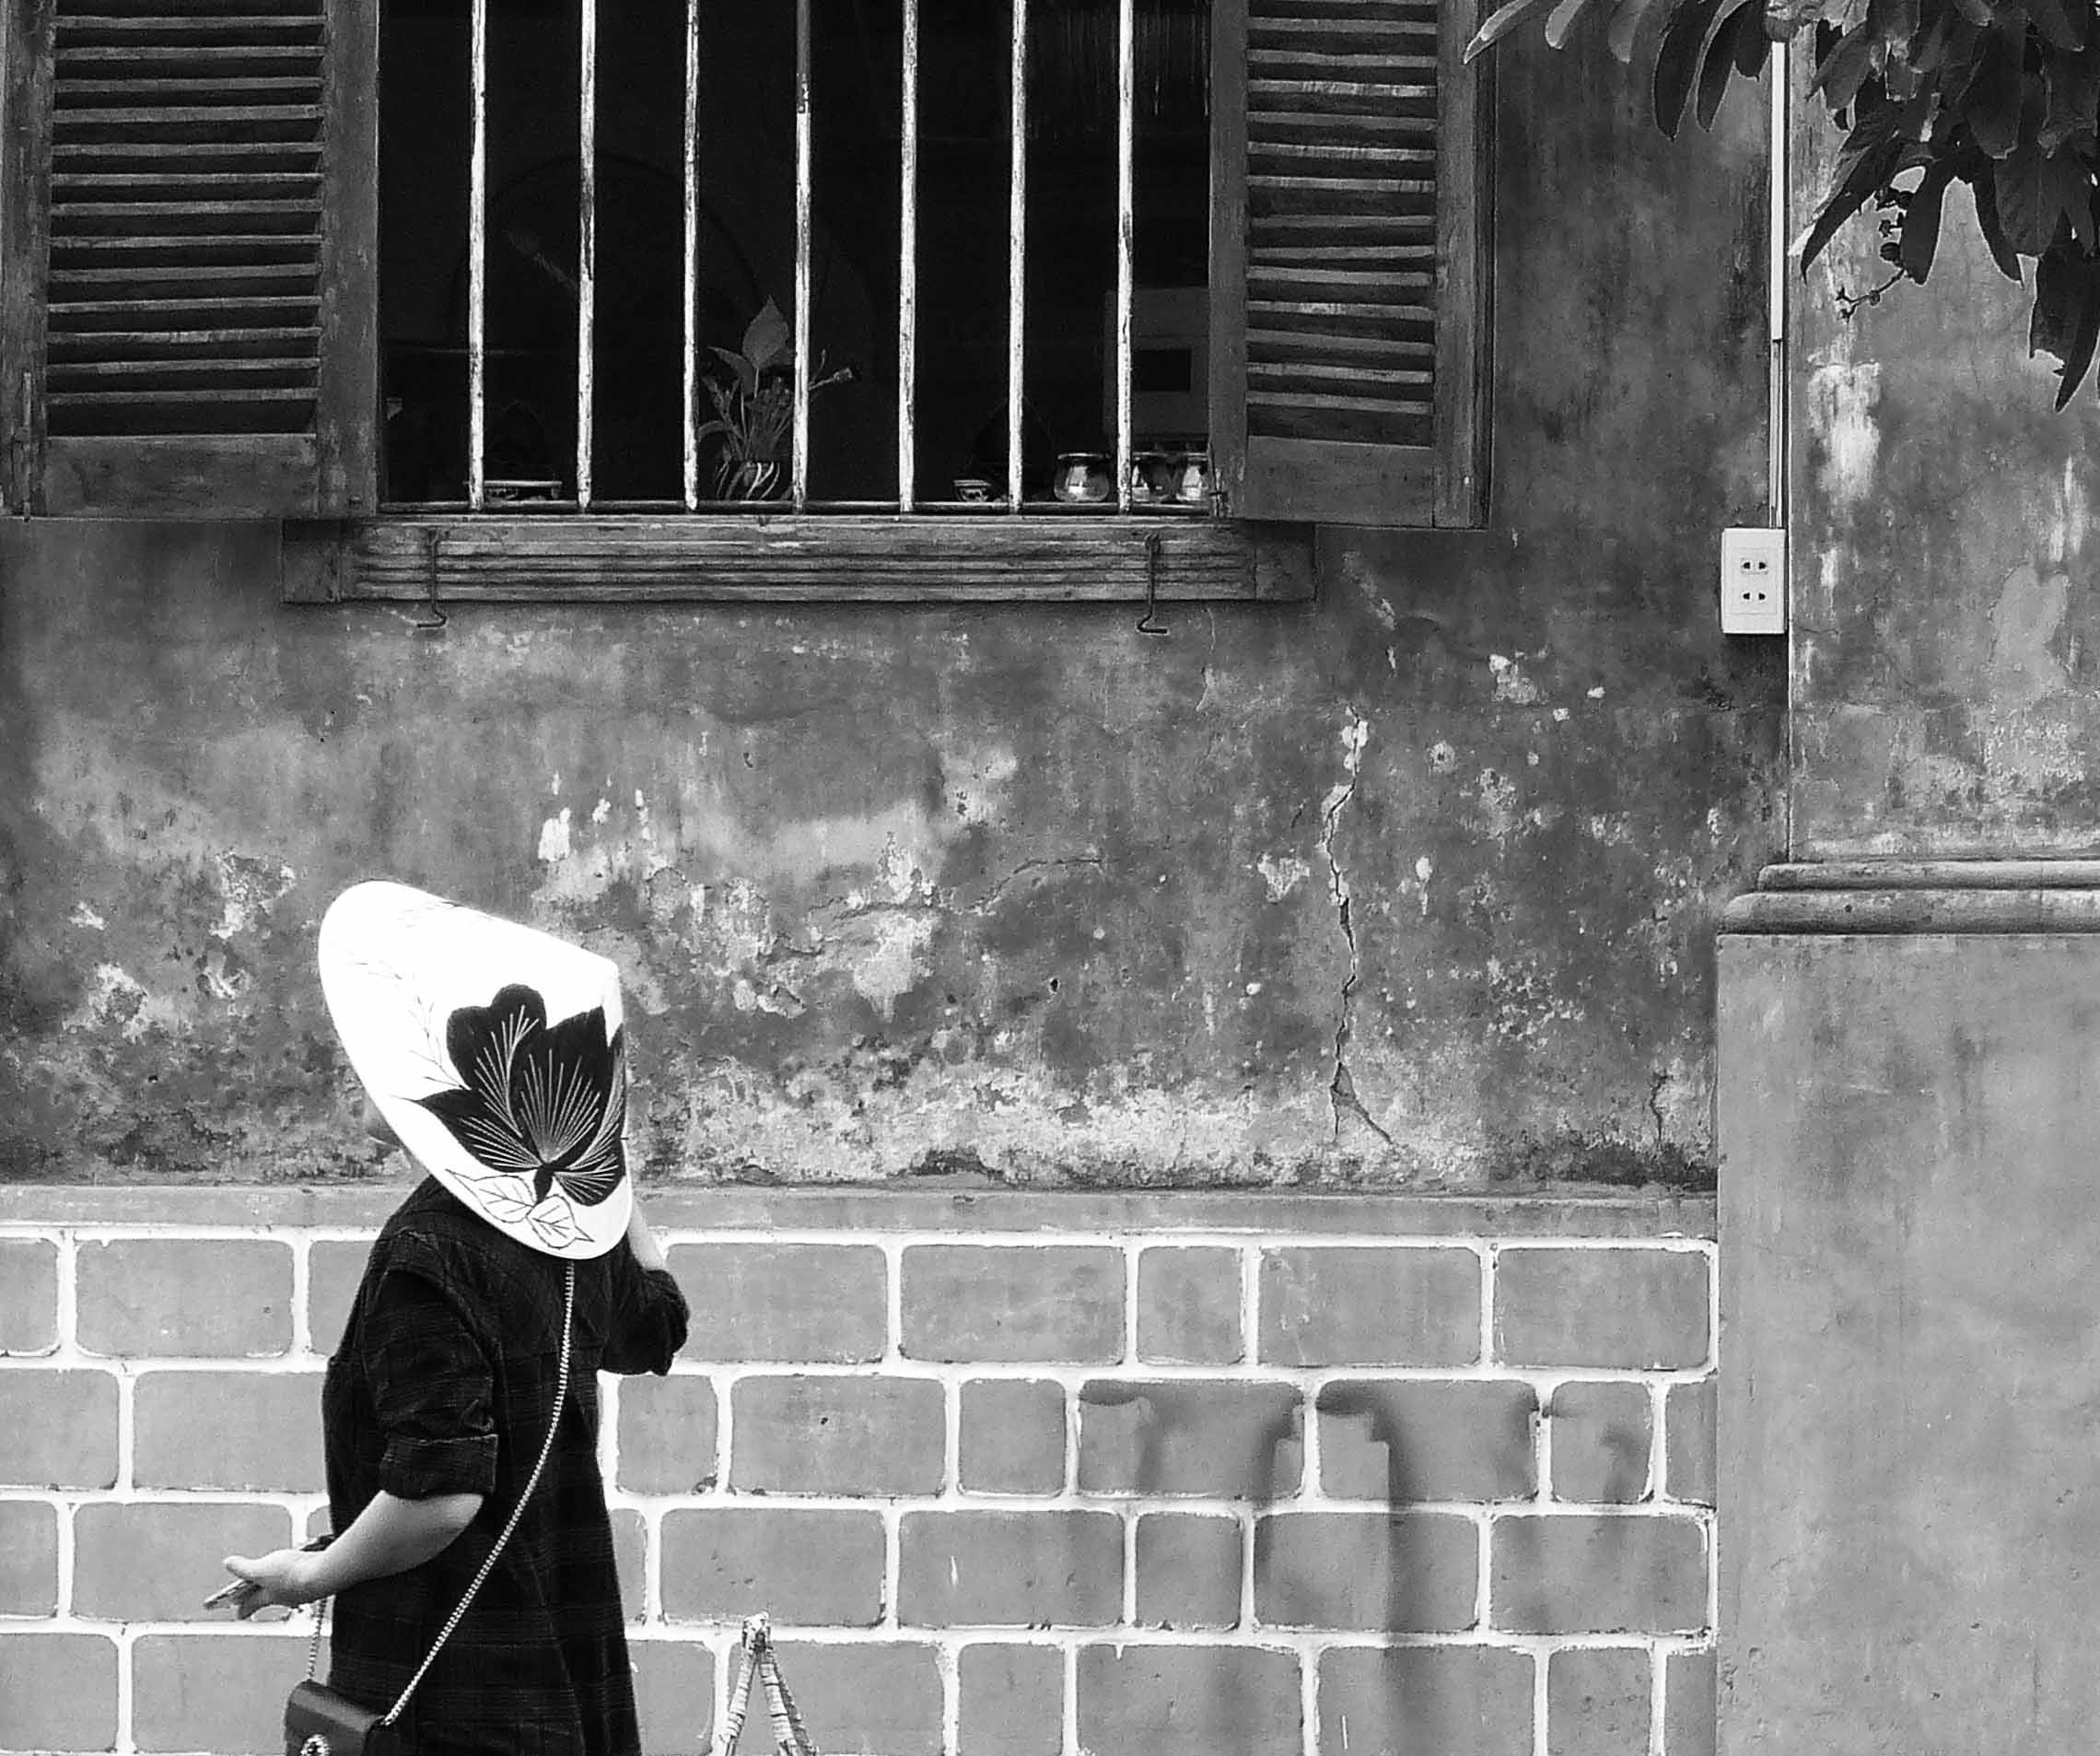 Lady in a hat walking past a building